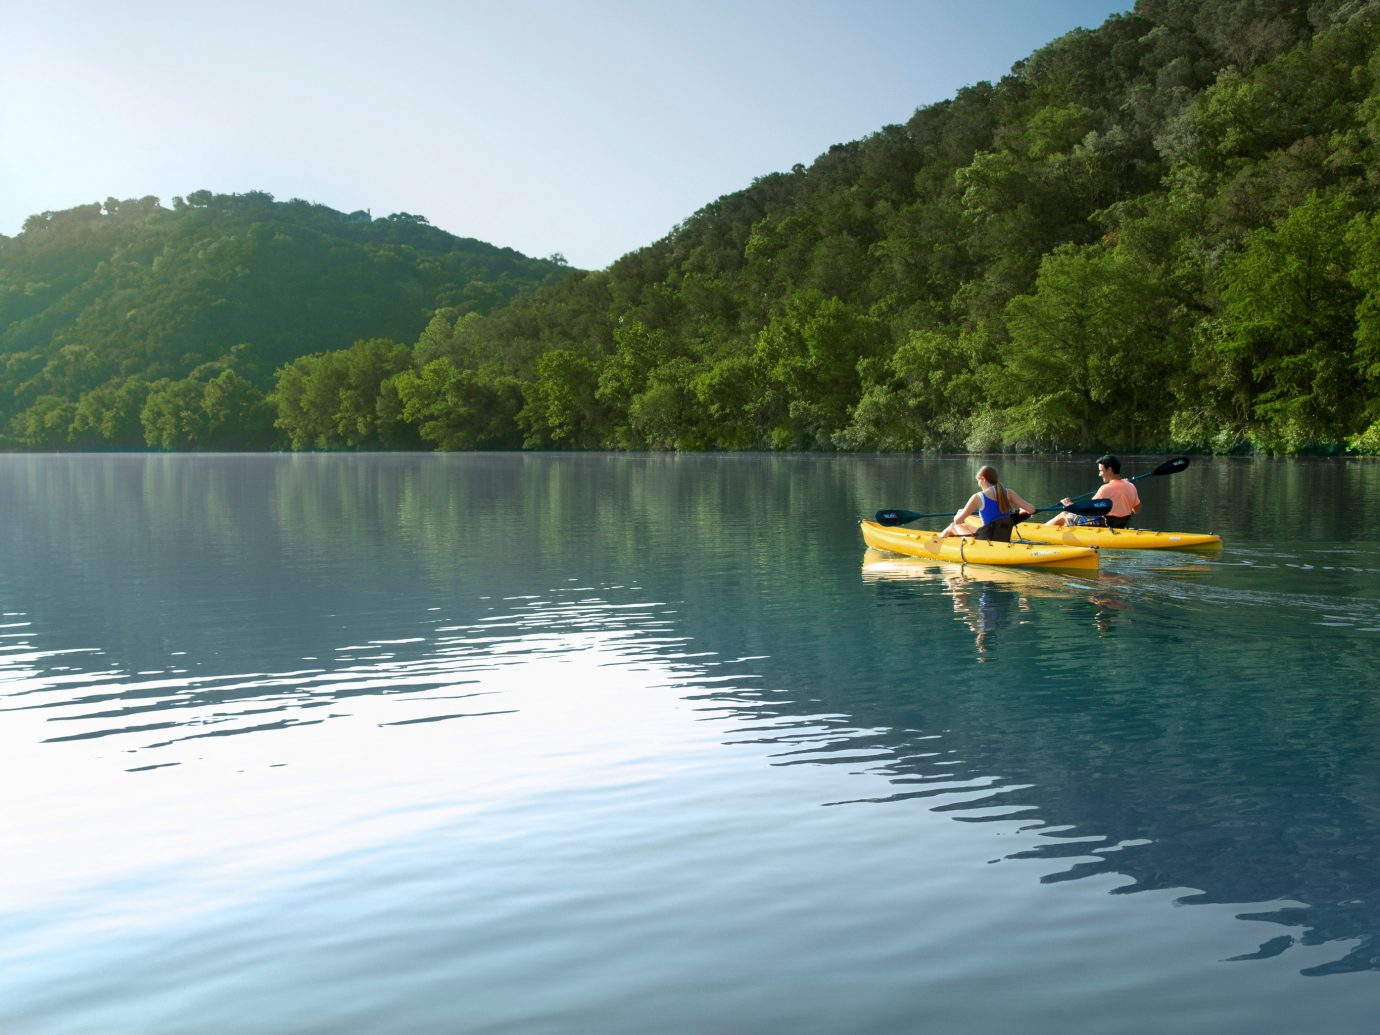 Hotels Lakes + Rivers water outdoor tree sky Boat vehicle Lake boating kayak kayaking mountain watercraft rowing canoe River watercraft sports equipment paddle reservoir surrounded